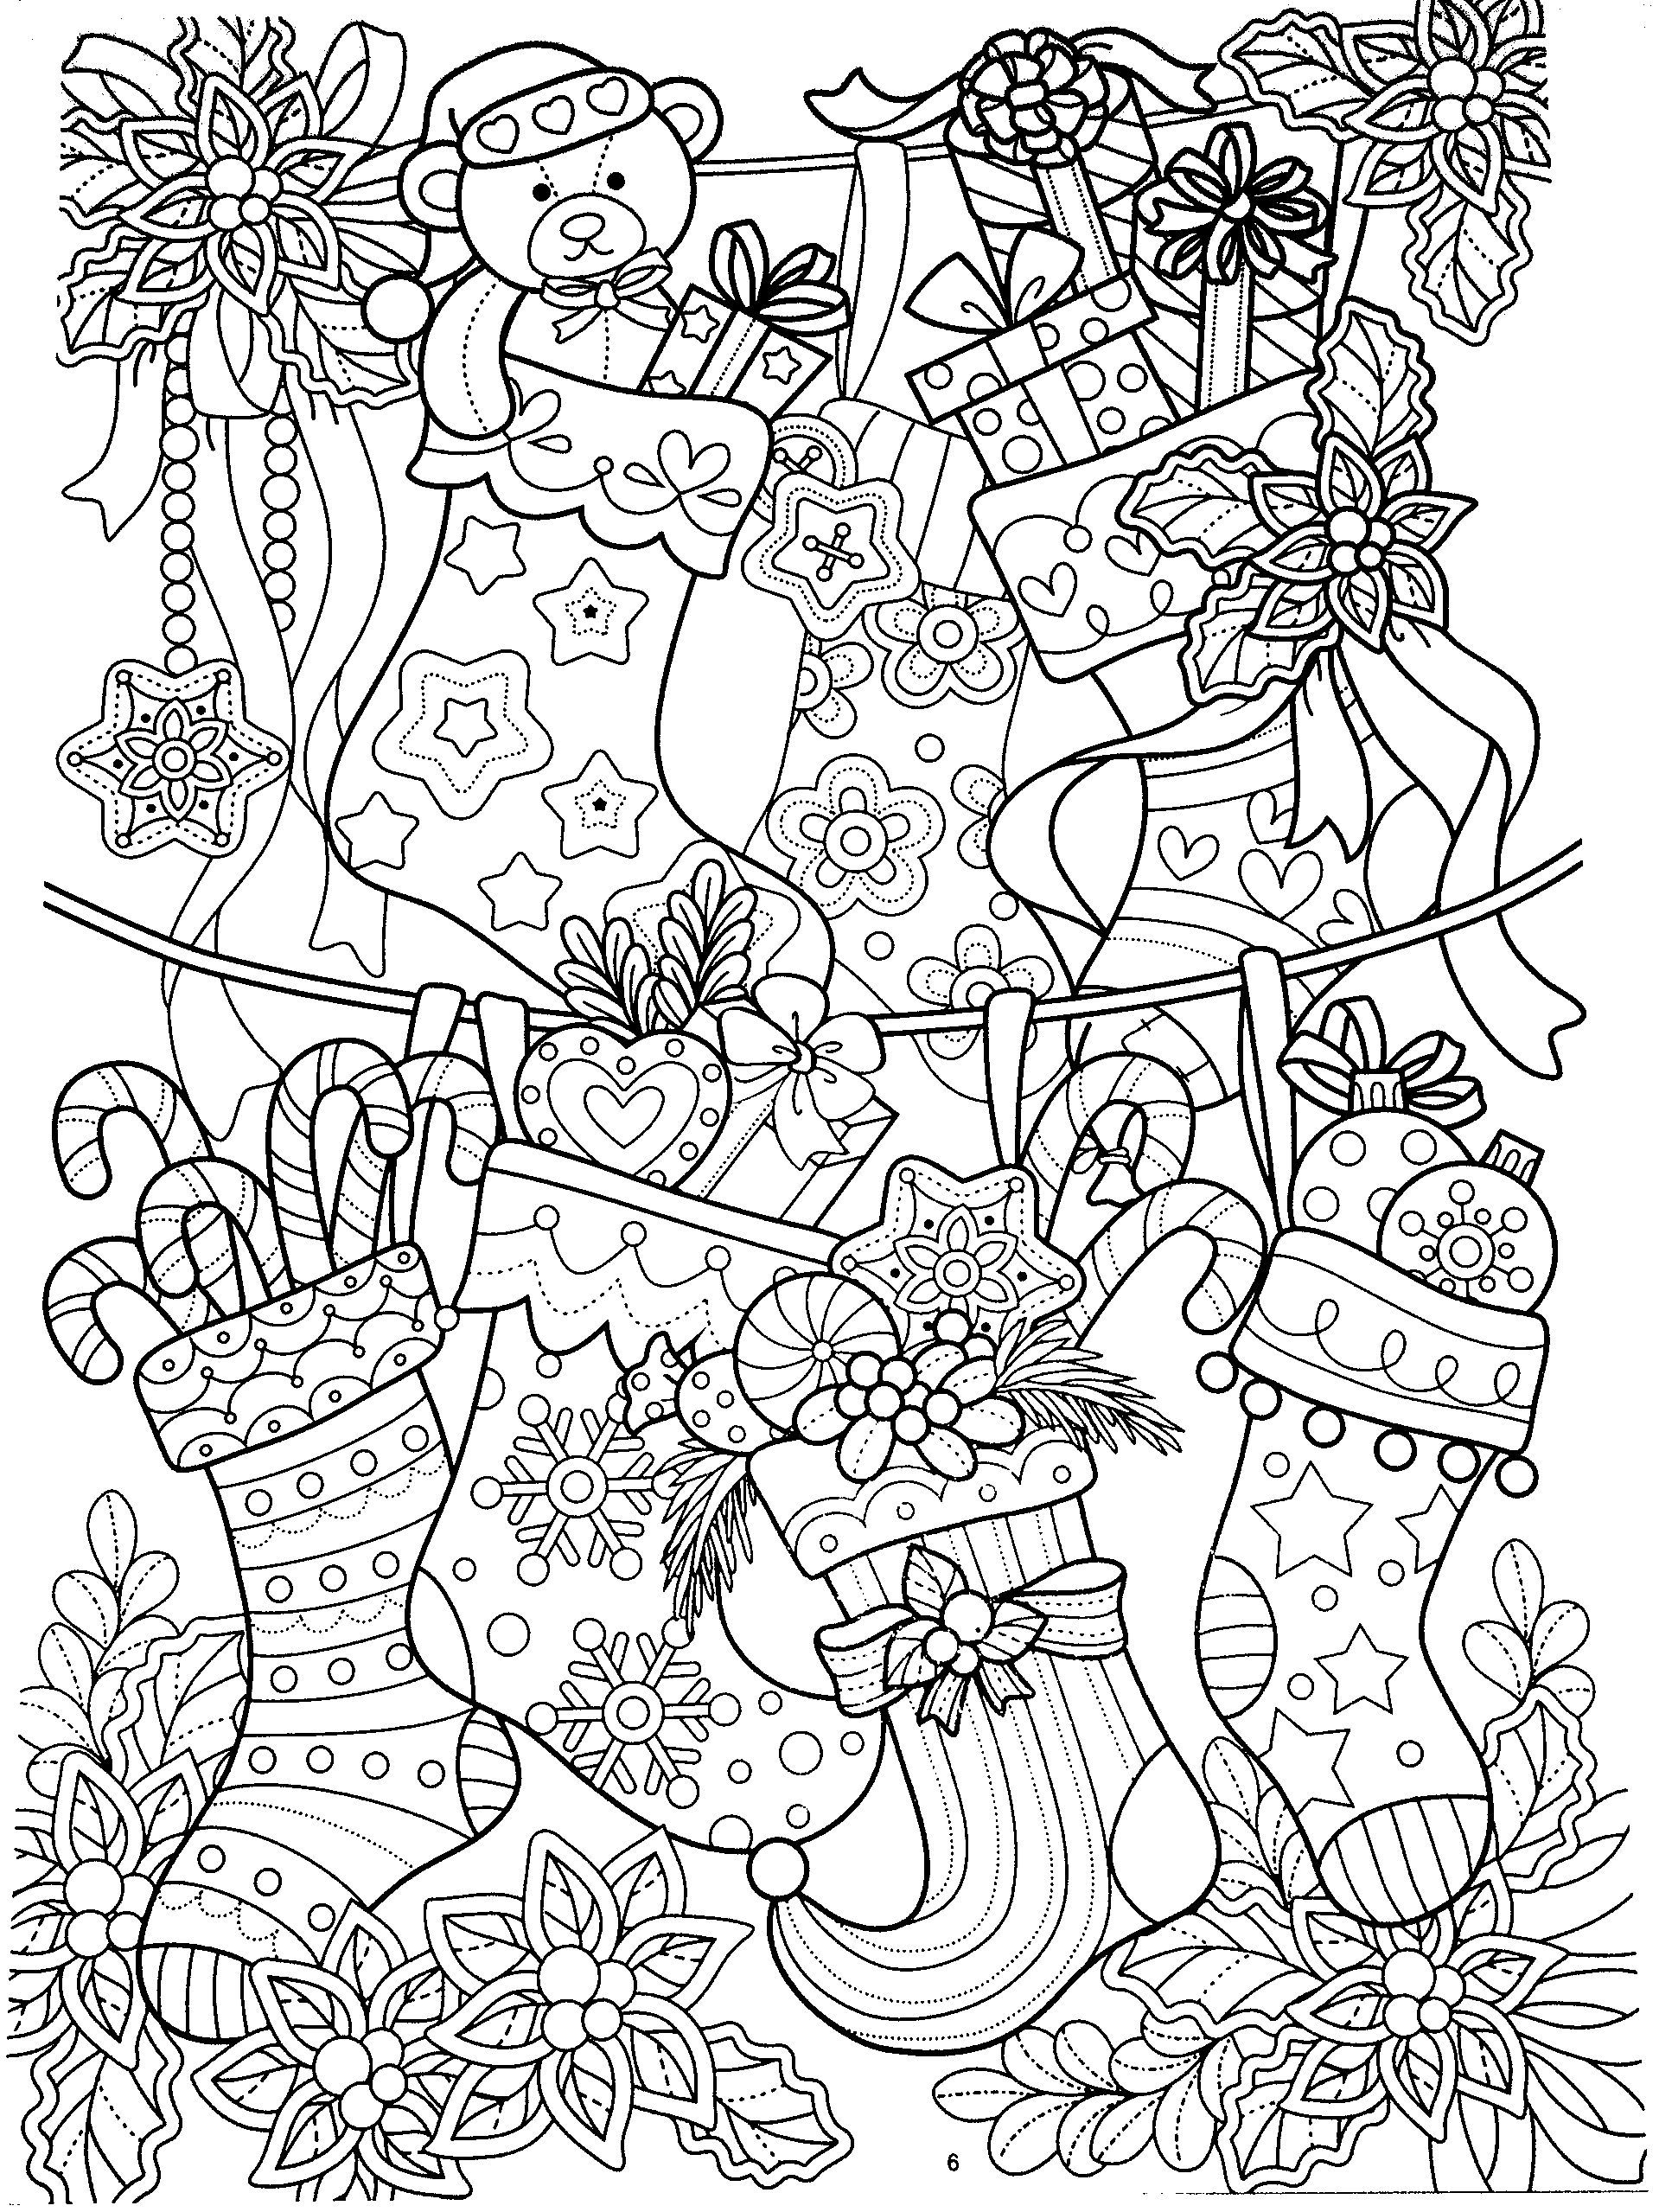 Coloring : Hnyyear Orig Happy New Year Page Years Pages Doodle Art ... | 2558x1919